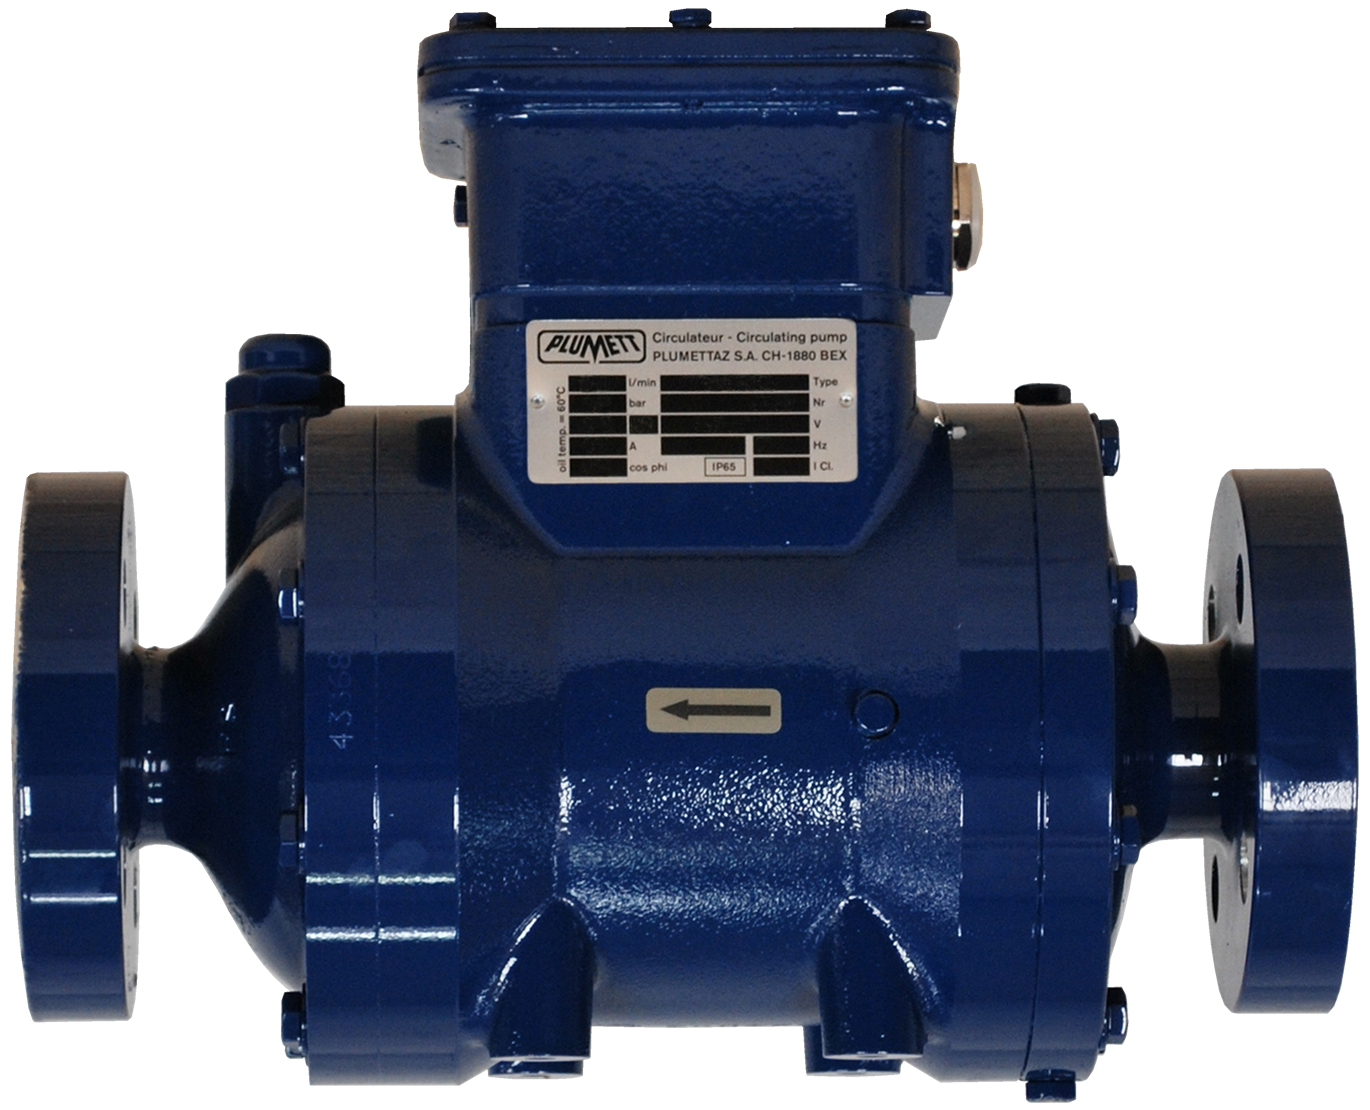 Picture of a blue oil circulating pump